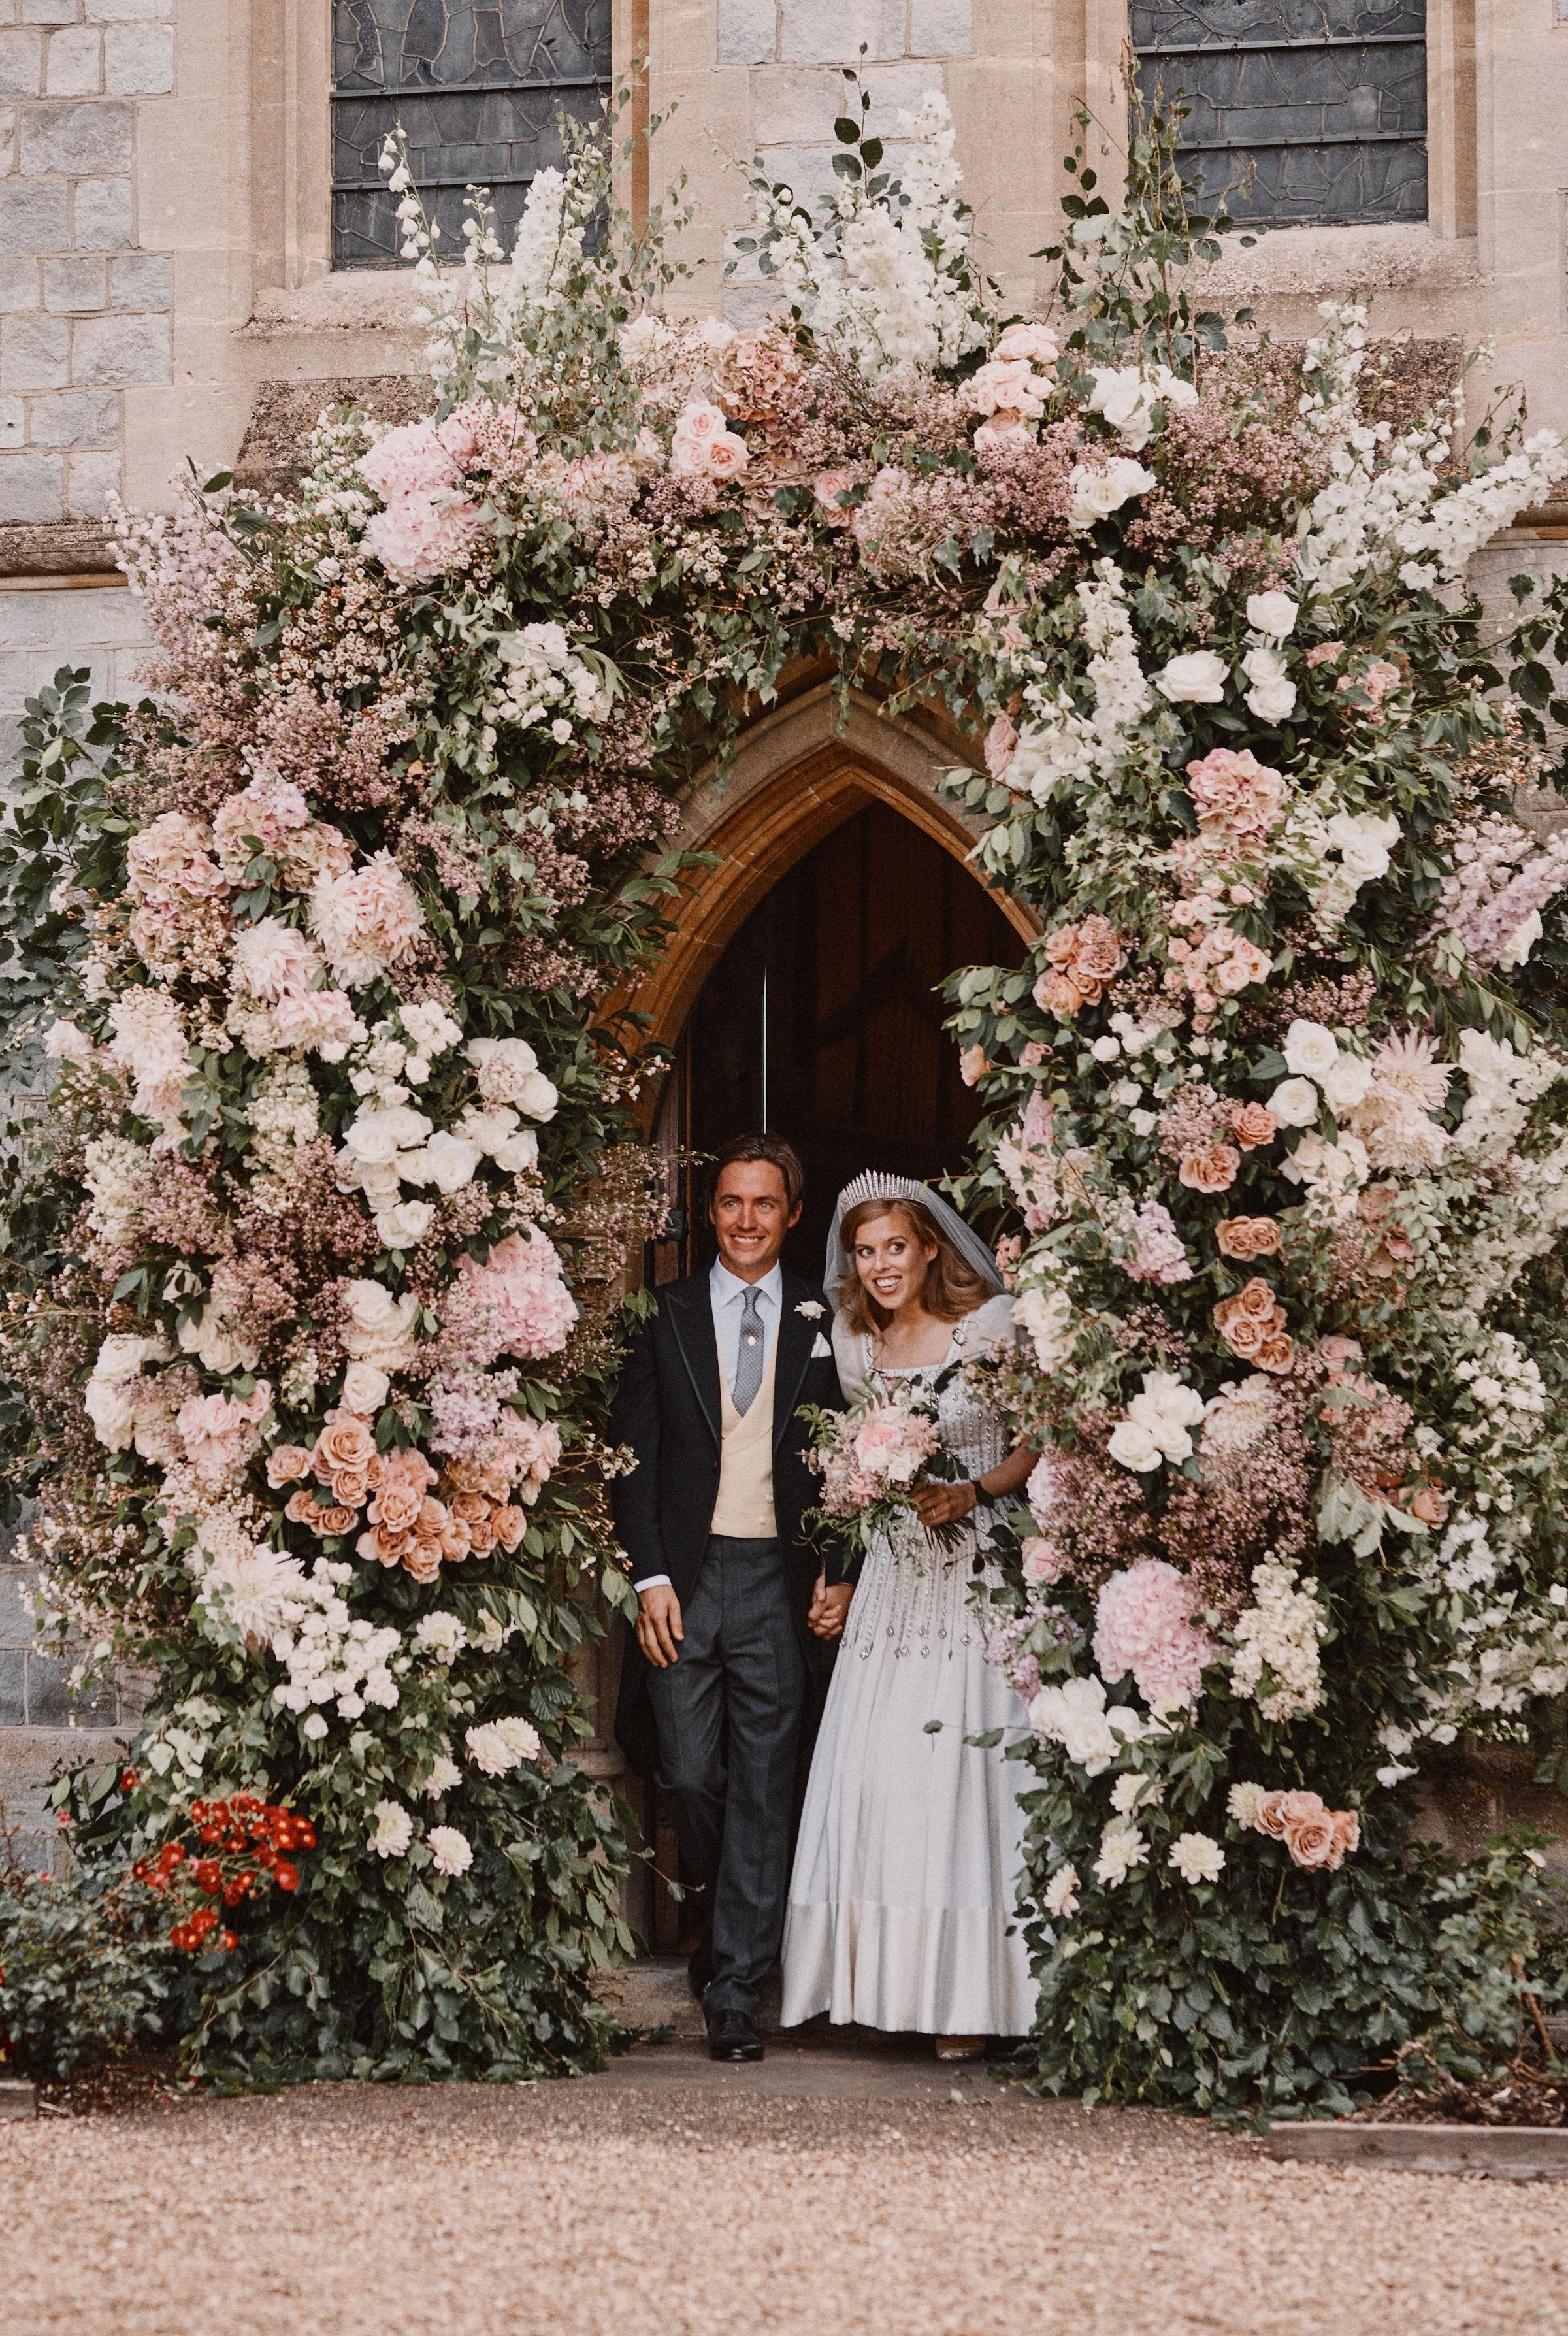 Princess Beatrice and Edoardo Mapelli Mozzi leaving The Royal Chapel of All Saints at Royal Lodge, Windsor after their wedding on July 17, 2020, in Windsor, England. | Source: Getty Images.